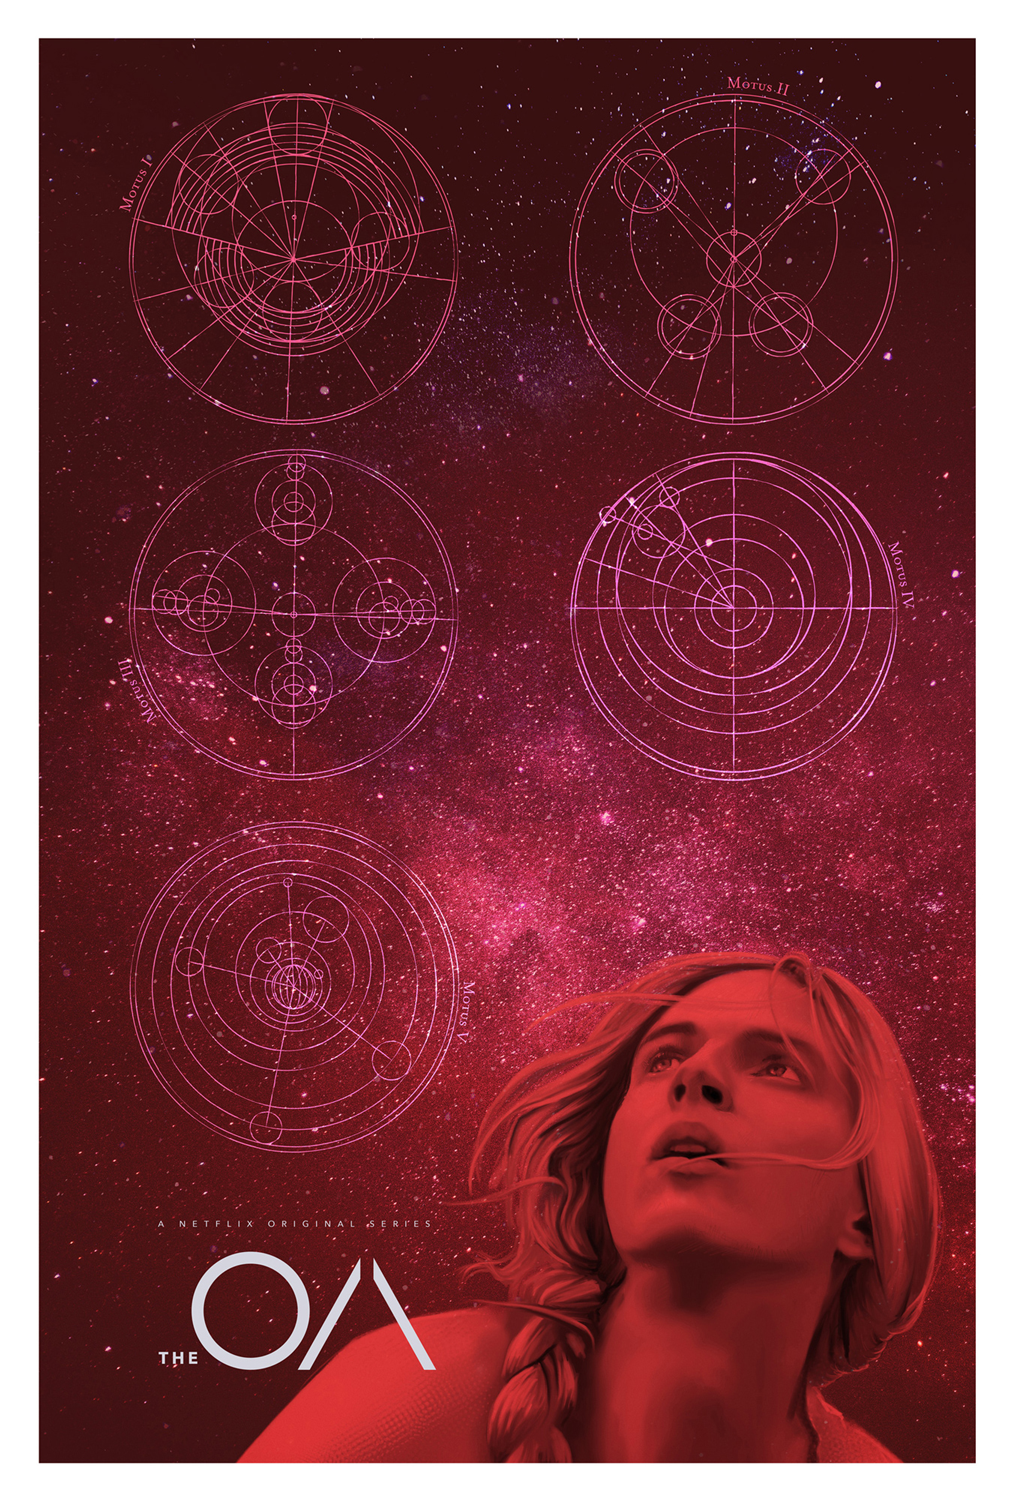 The OA Space Variant NETFLIX MOVIE poster design by Mark Levy Art